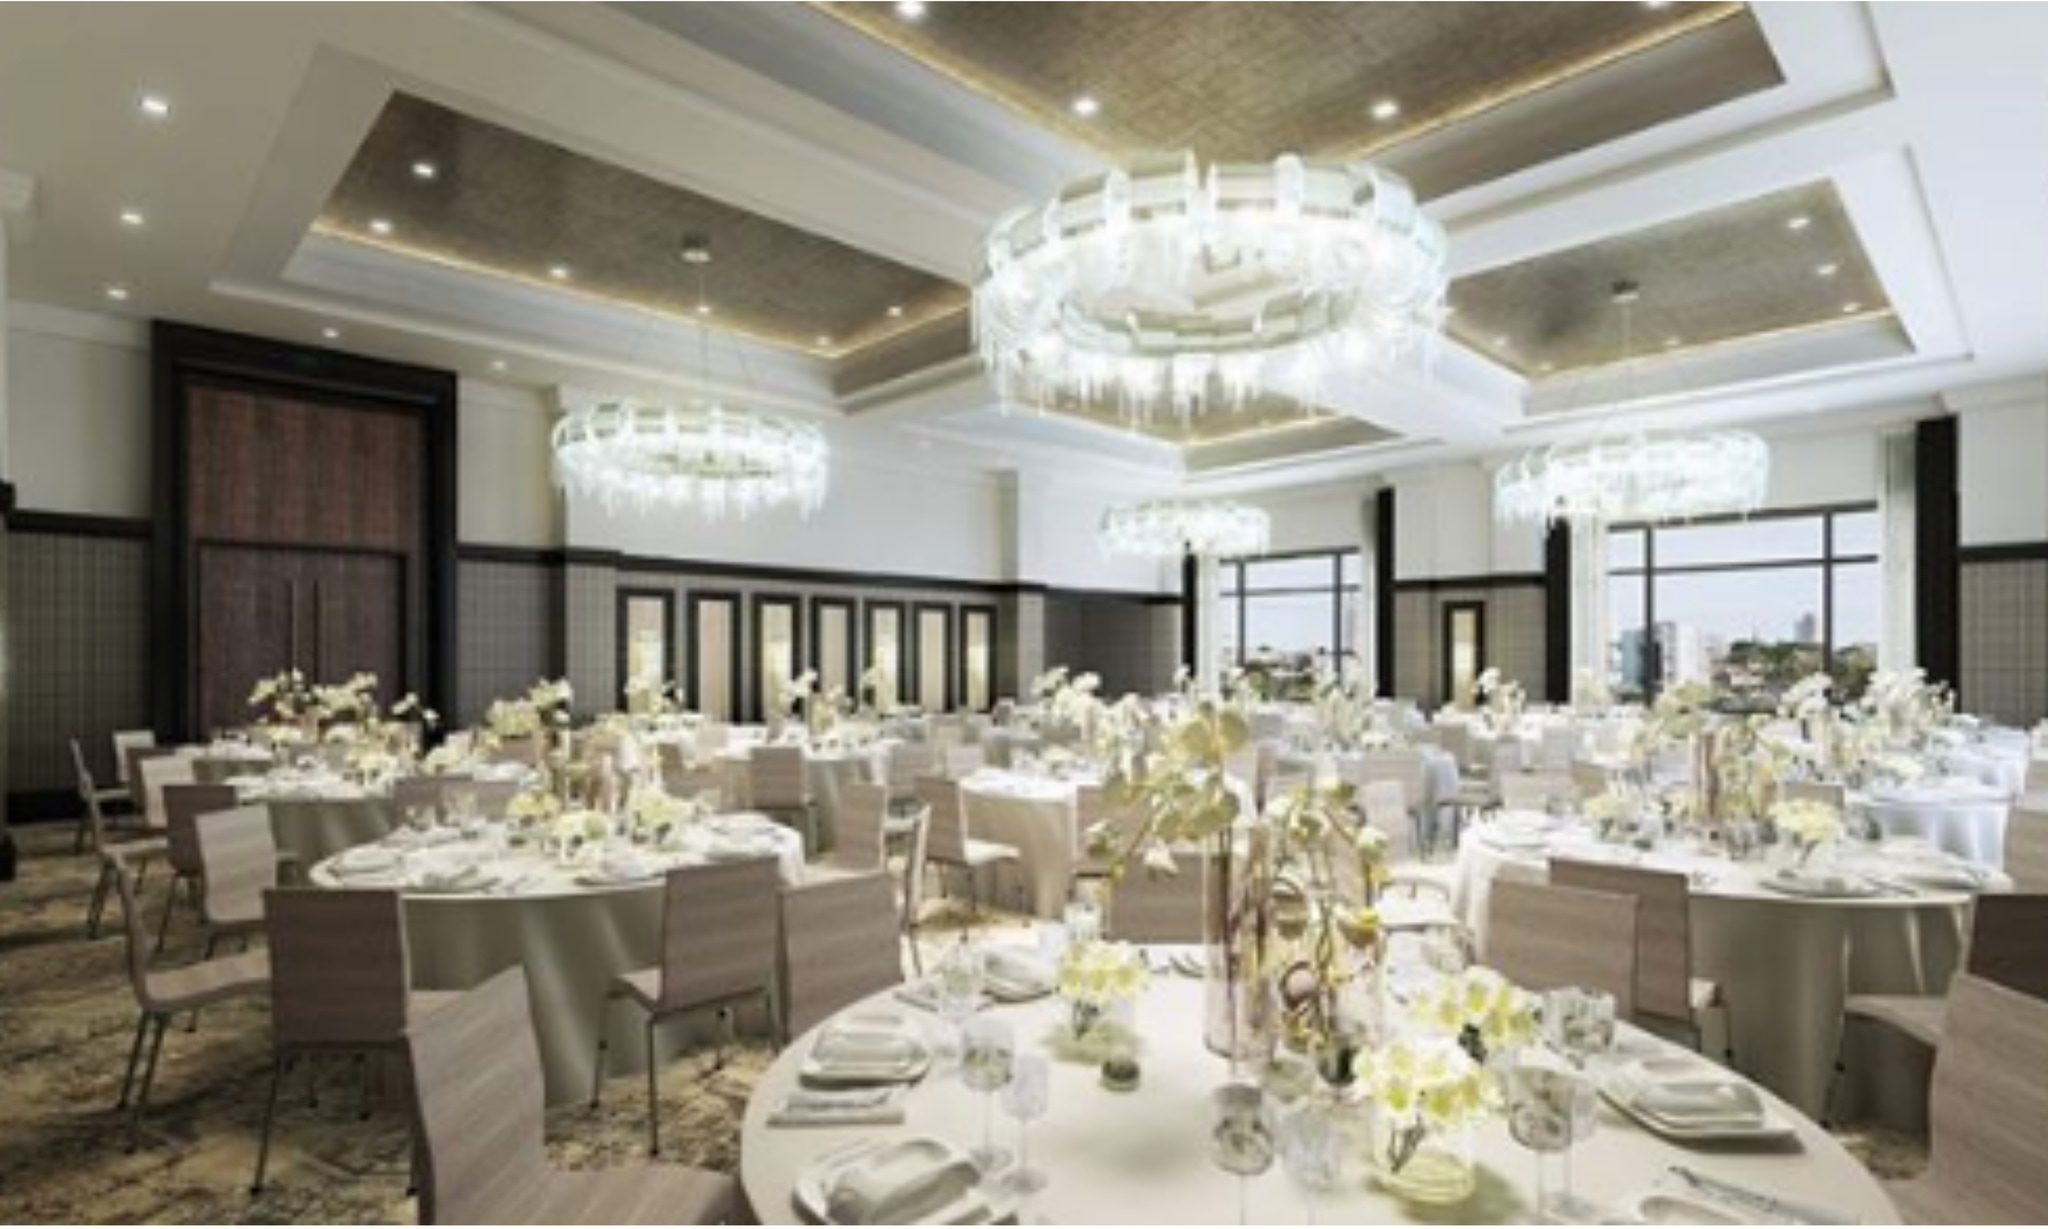 Crystal chandeliers, white table decor and florals at Post Oak Hotel Houston